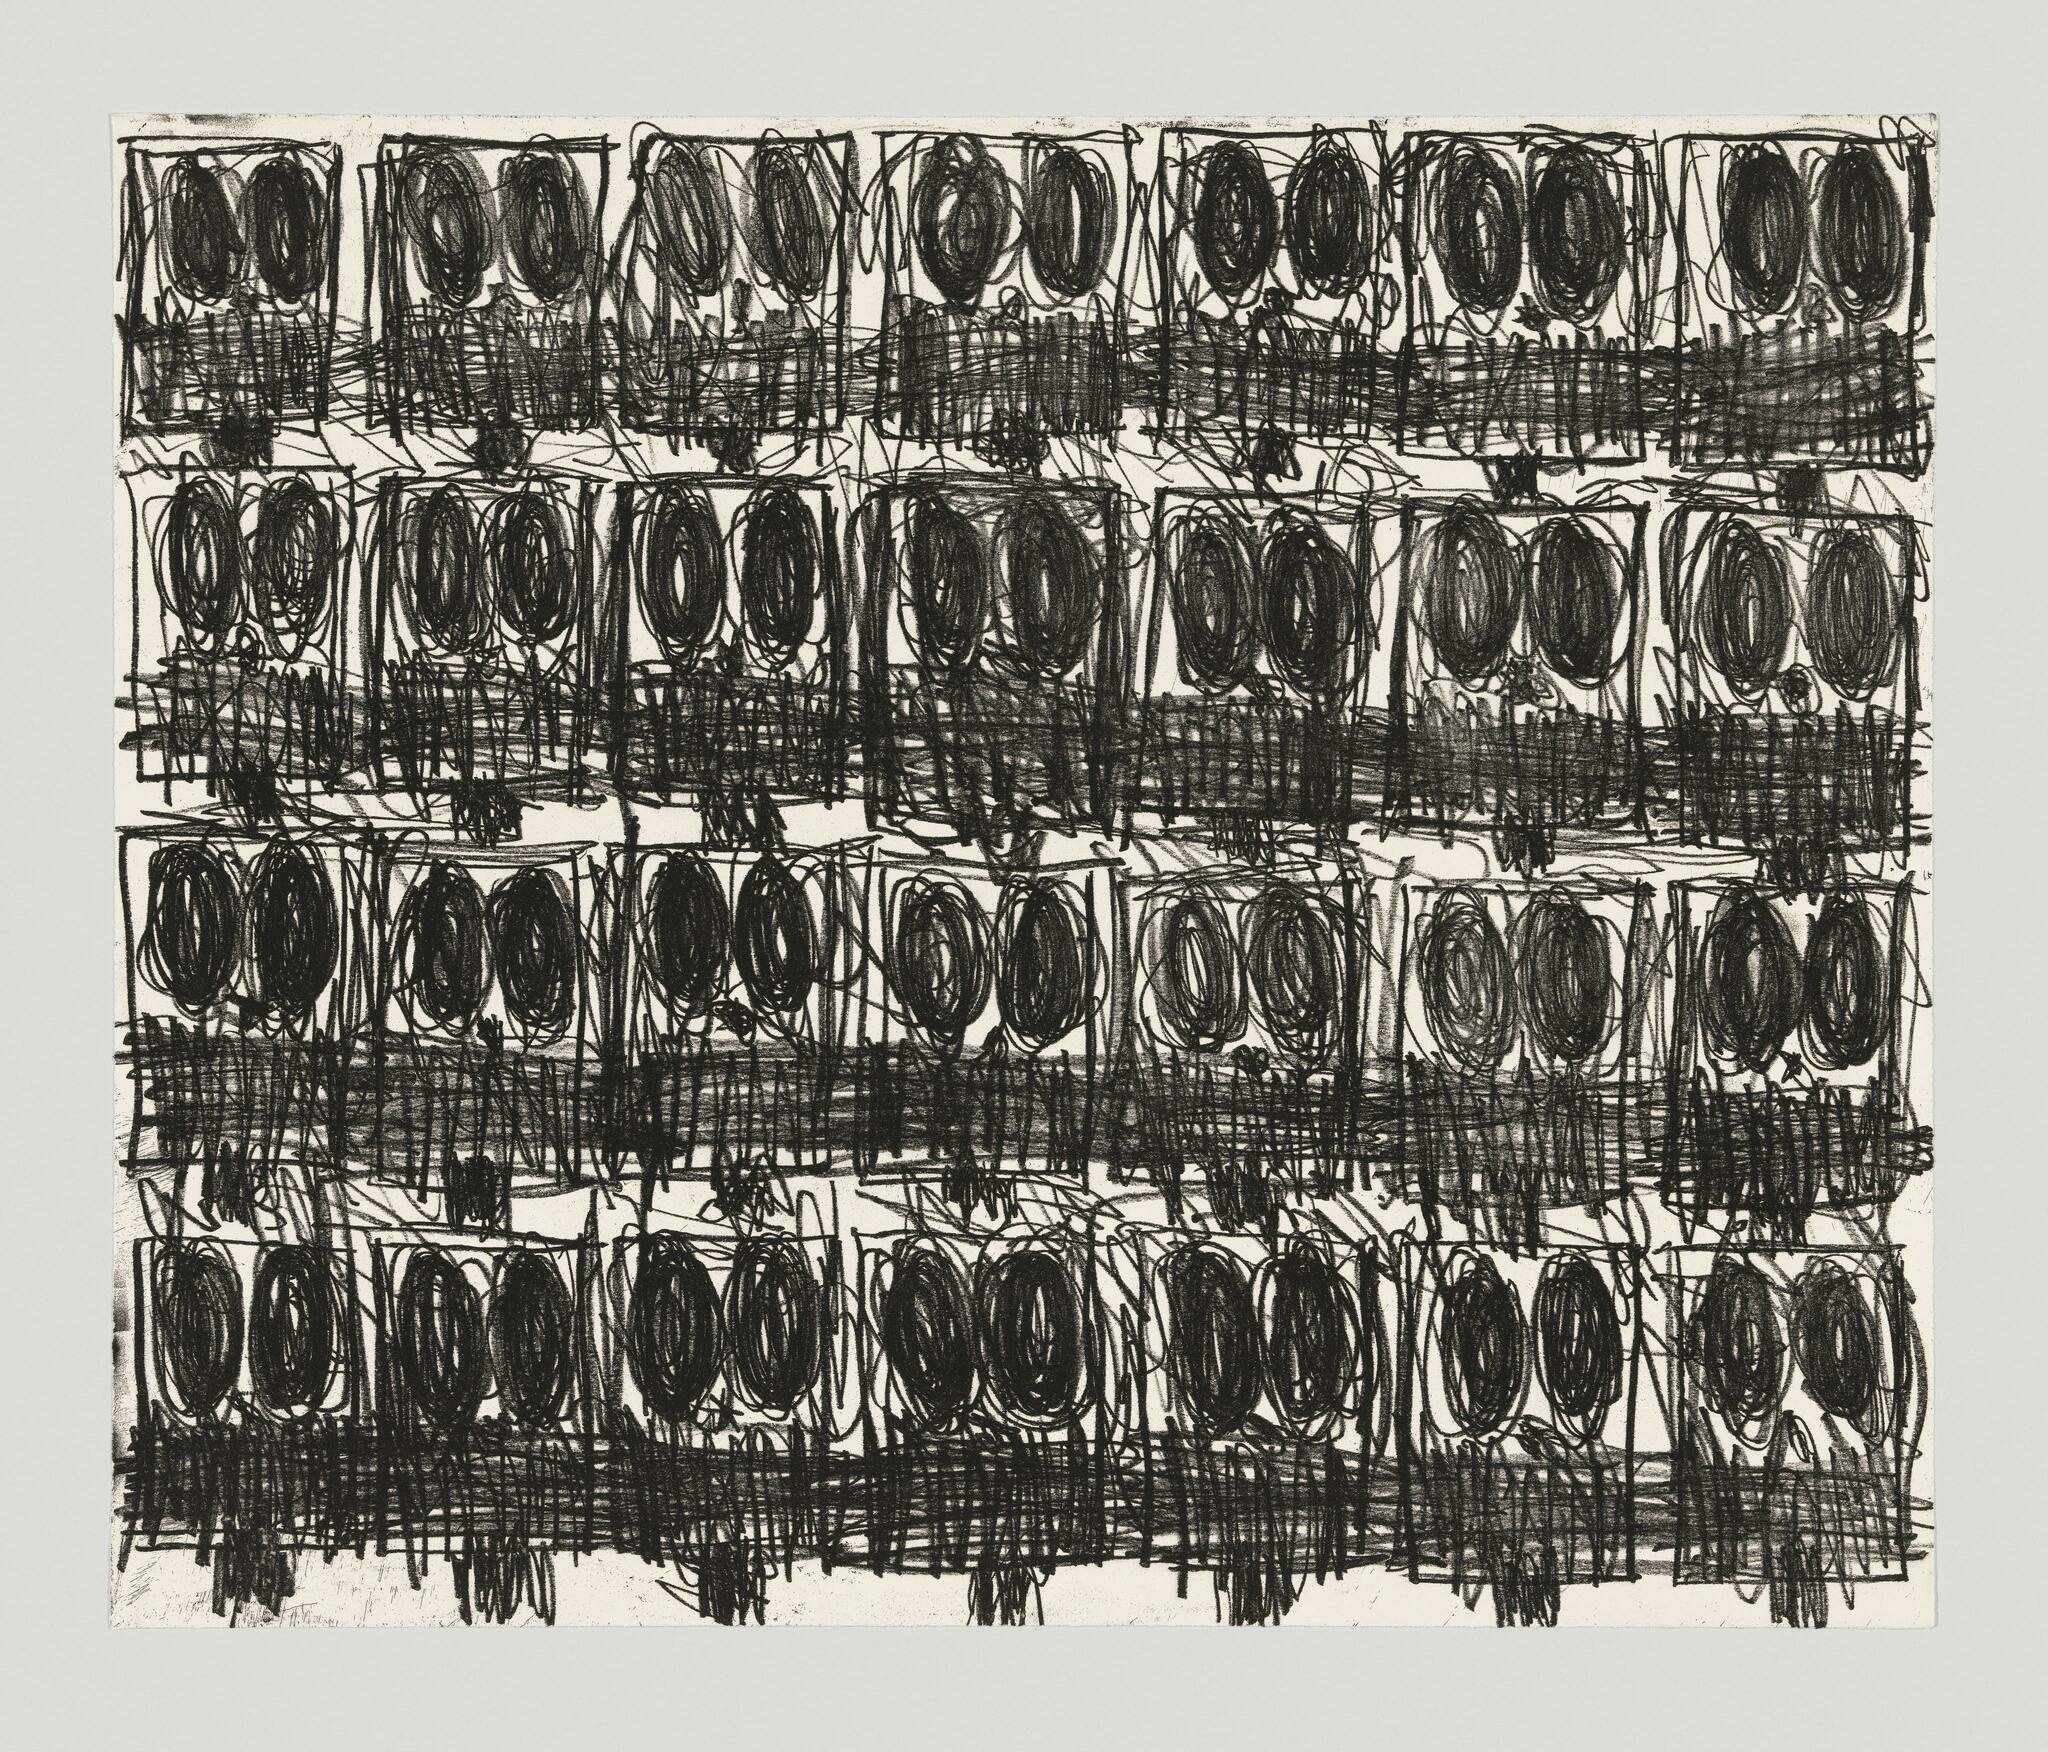 A grid of nearly identical, frenetically scribbled faces fills the paper